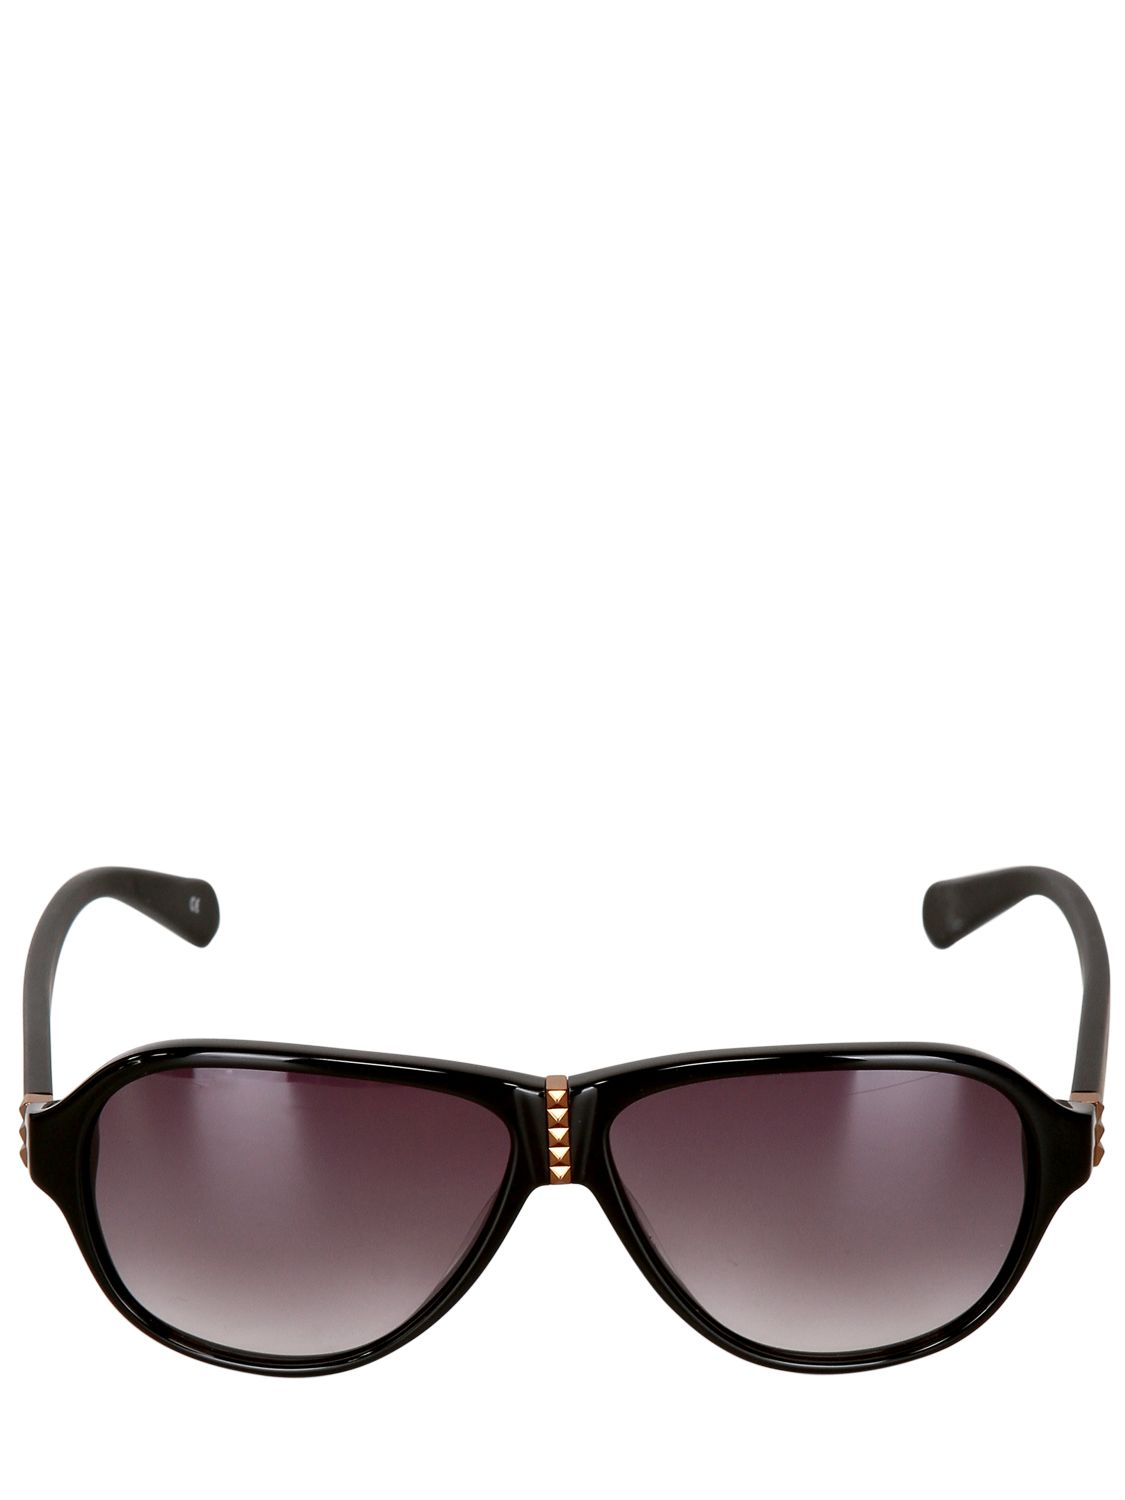 be4568c85 Gucci Aviator Sunglasses Solstice   United Nations System Chief ...